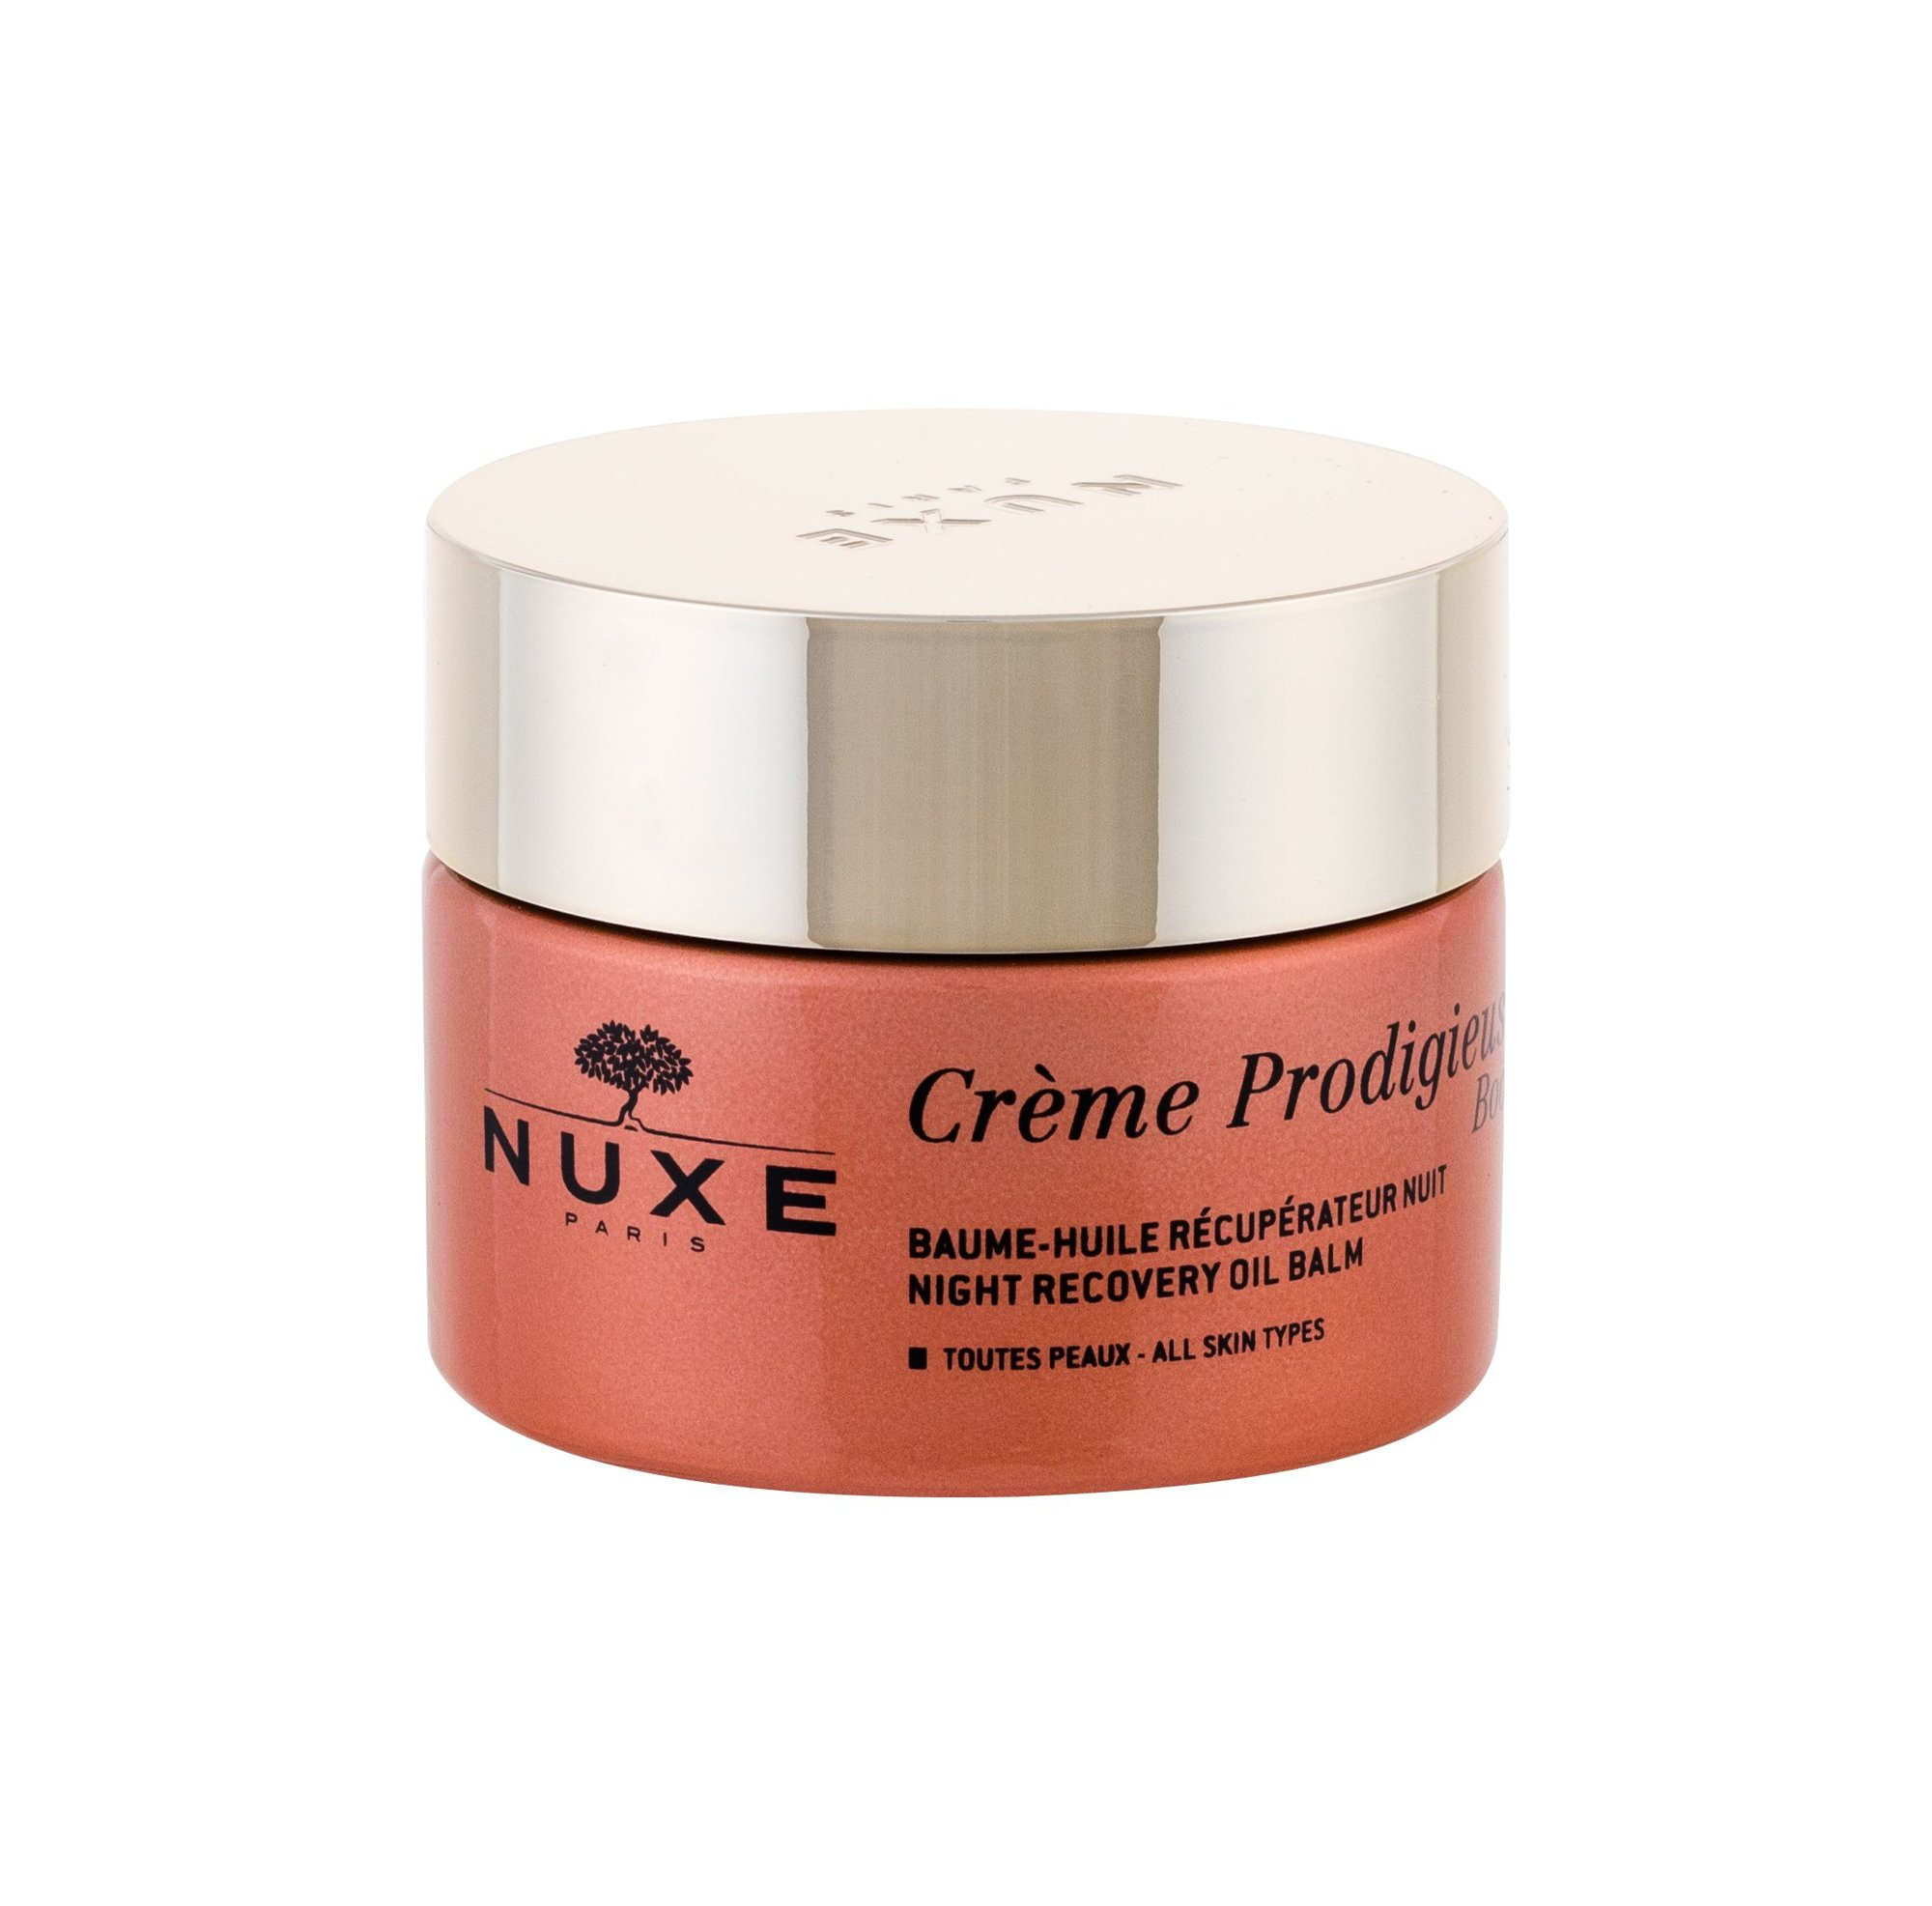 NUXE Creme Prodigieuse Boost Night Skin Cream 50ml